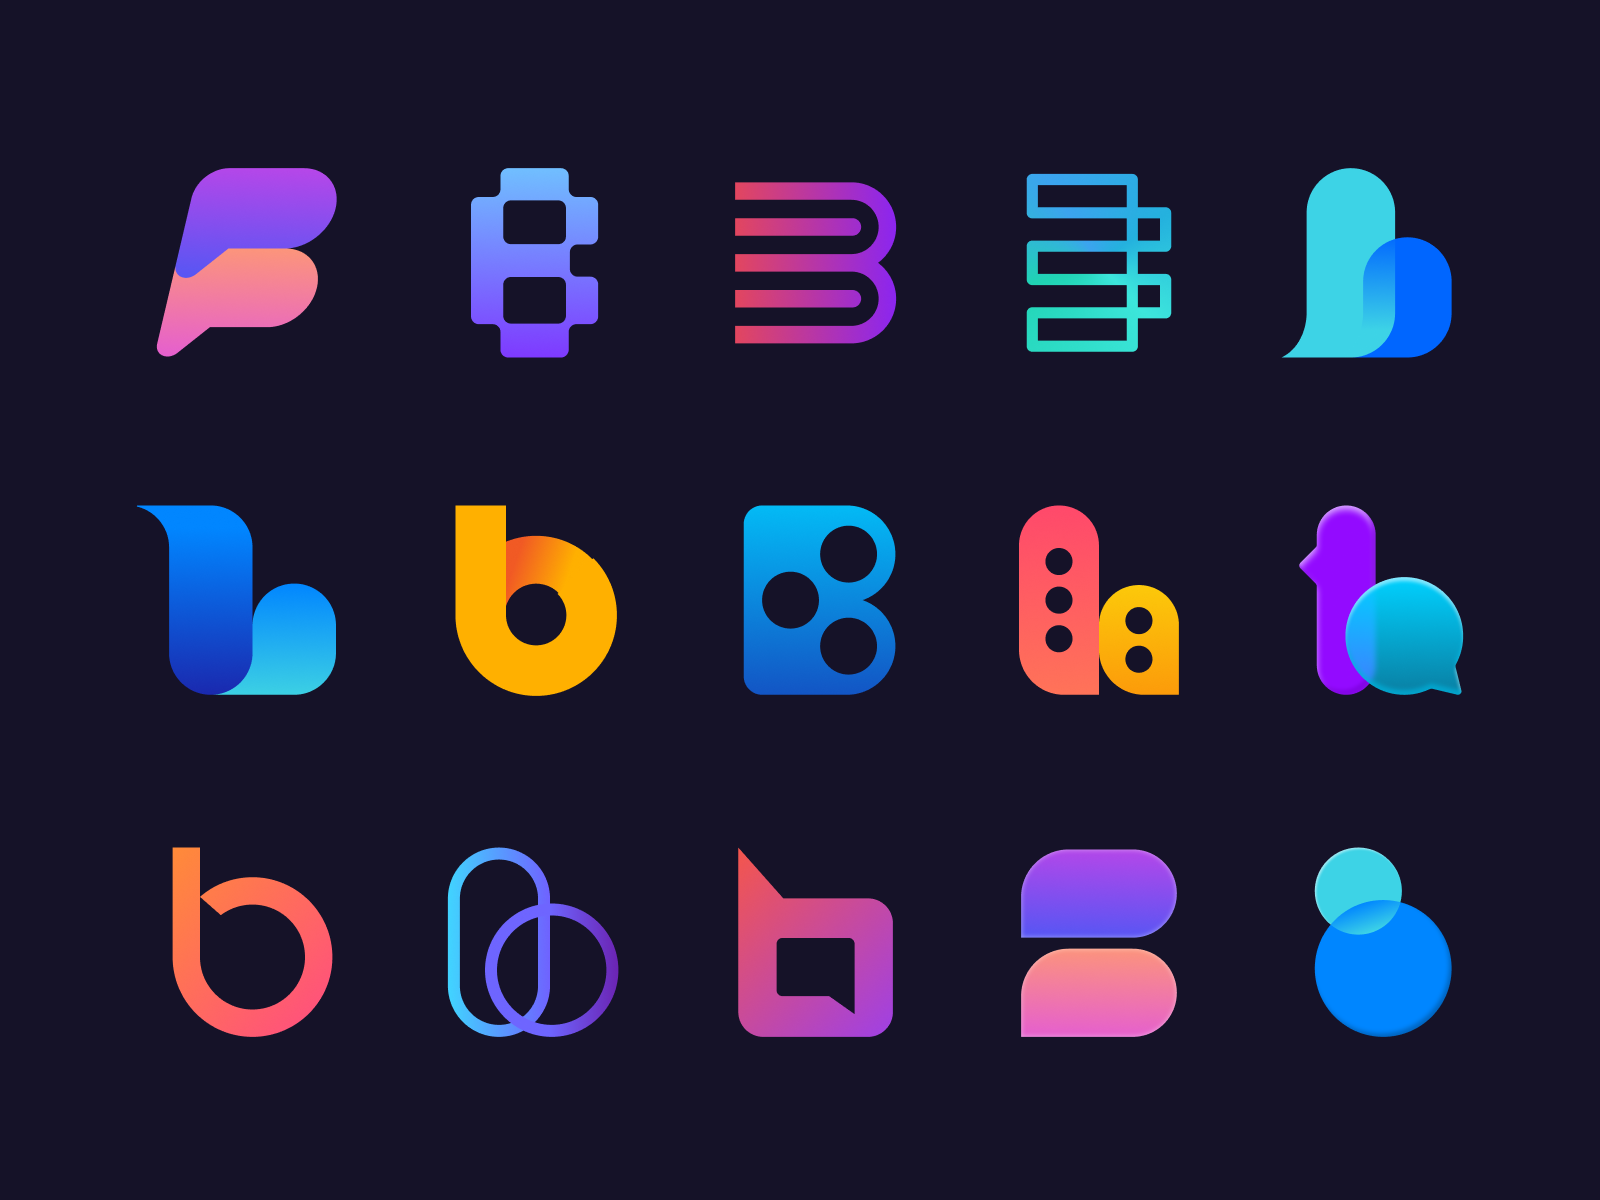 B Logos by Jordan Jenkins for unfold